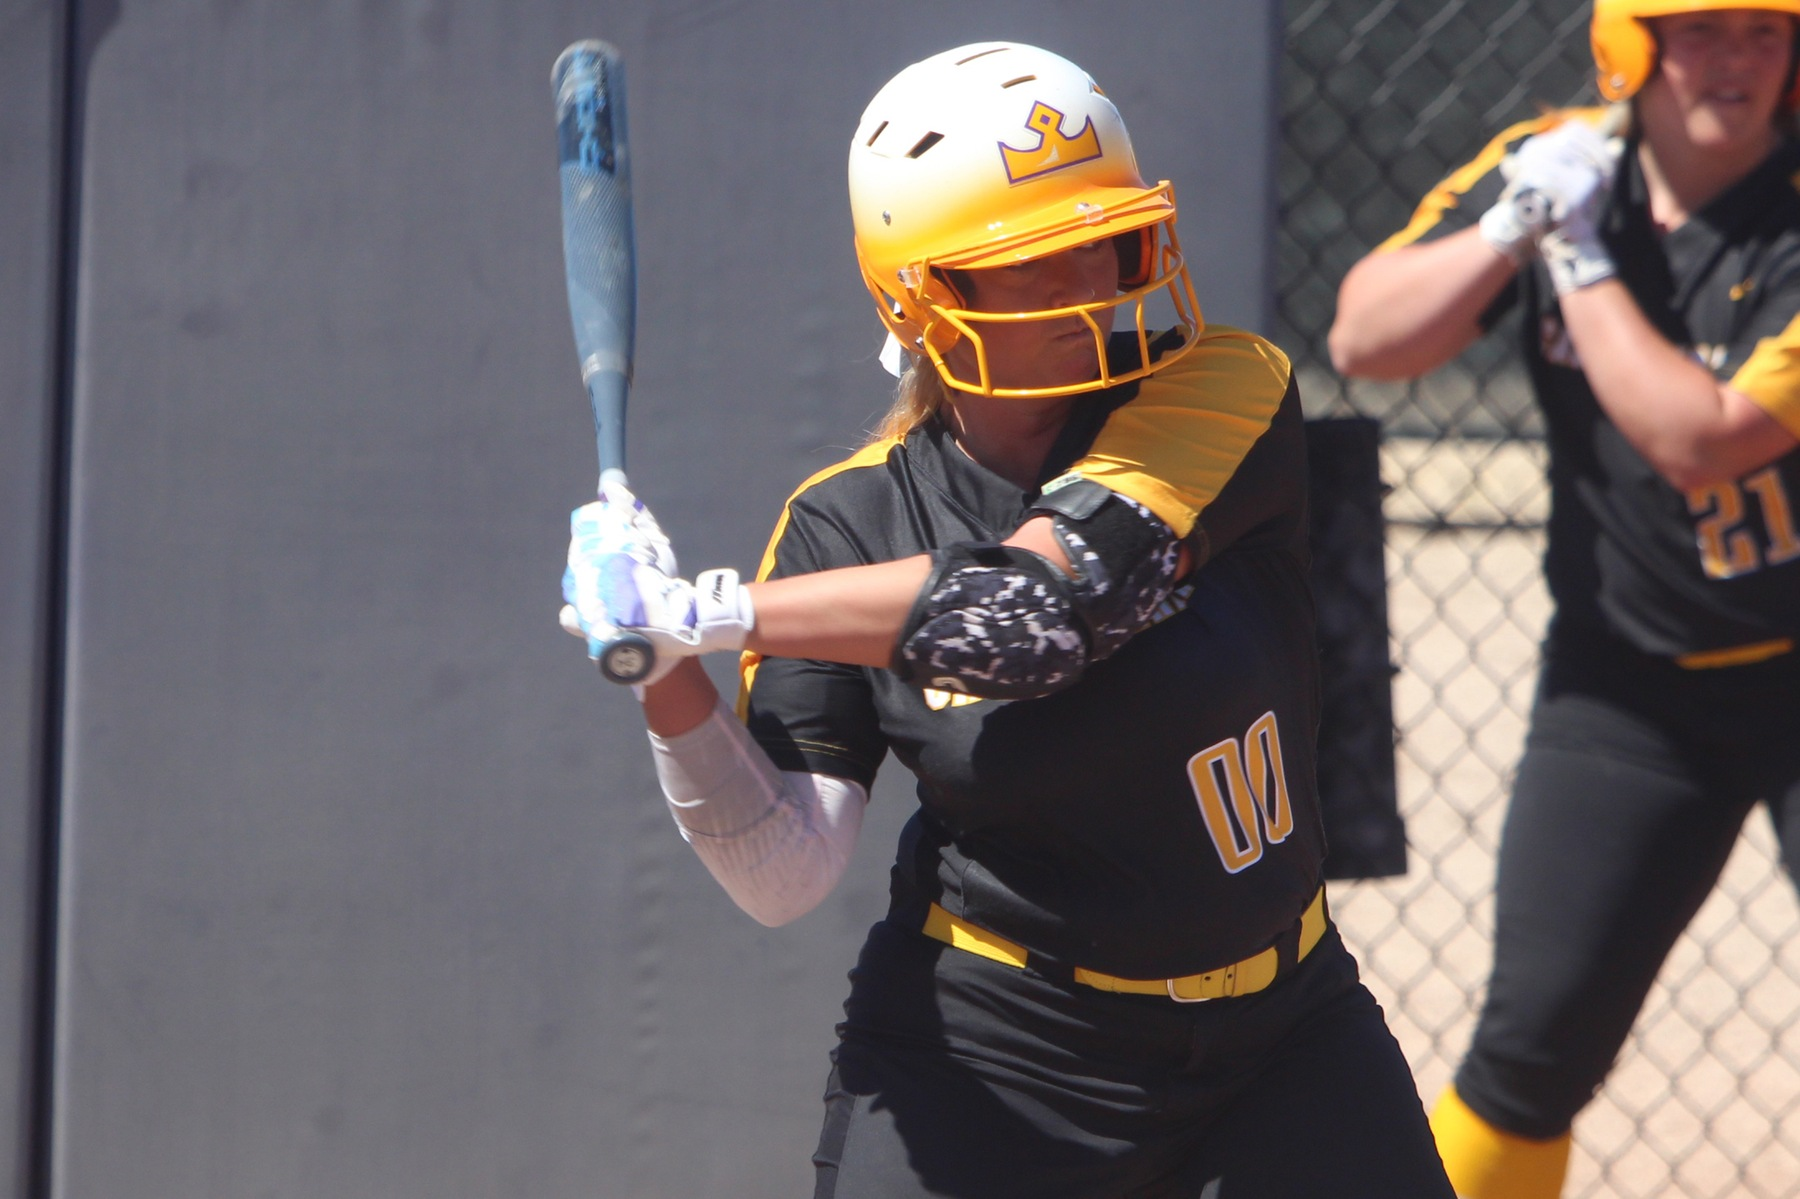 Rachel Barker hit her first home run with Cal Lutheran.